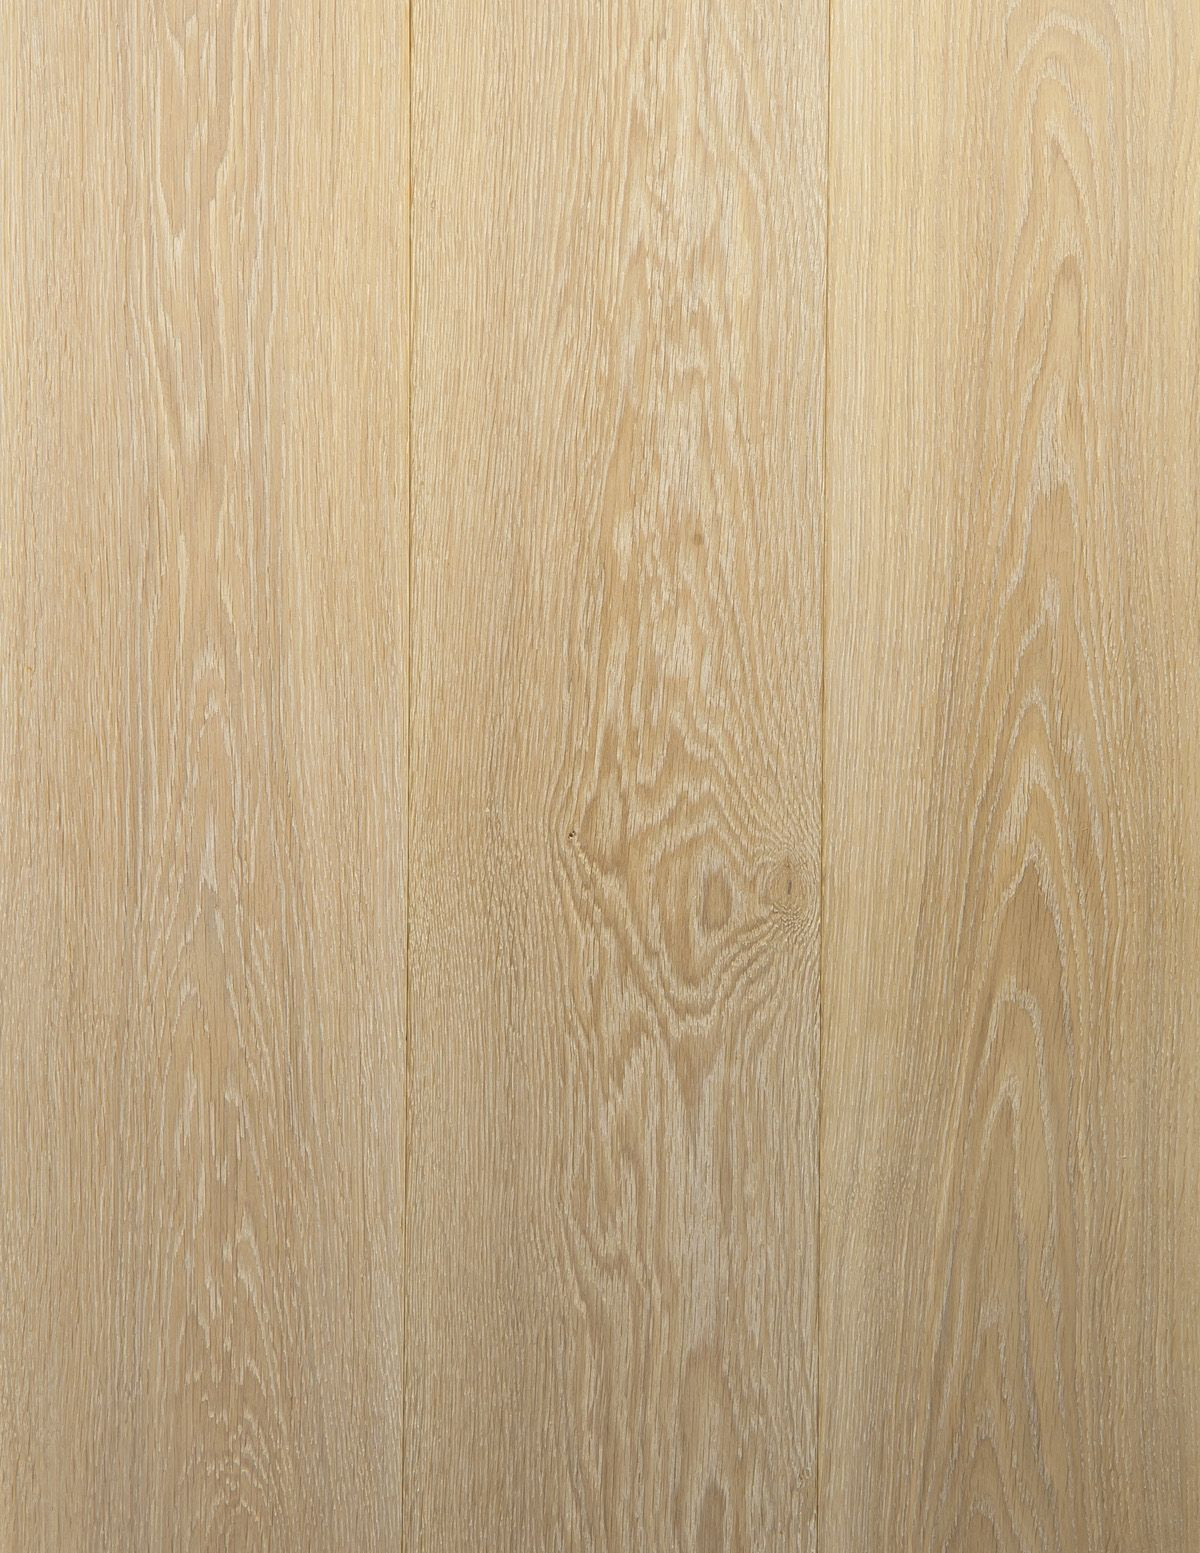 hardwood flooring bc canada of legno bastone light brushed white oiled 18 artisan controlled wire pertaining to legno bastone light brushed white oiled 18 artisan controlled wire brush all natural hard wax oil finish 2 european grand french white oak extra wide 180